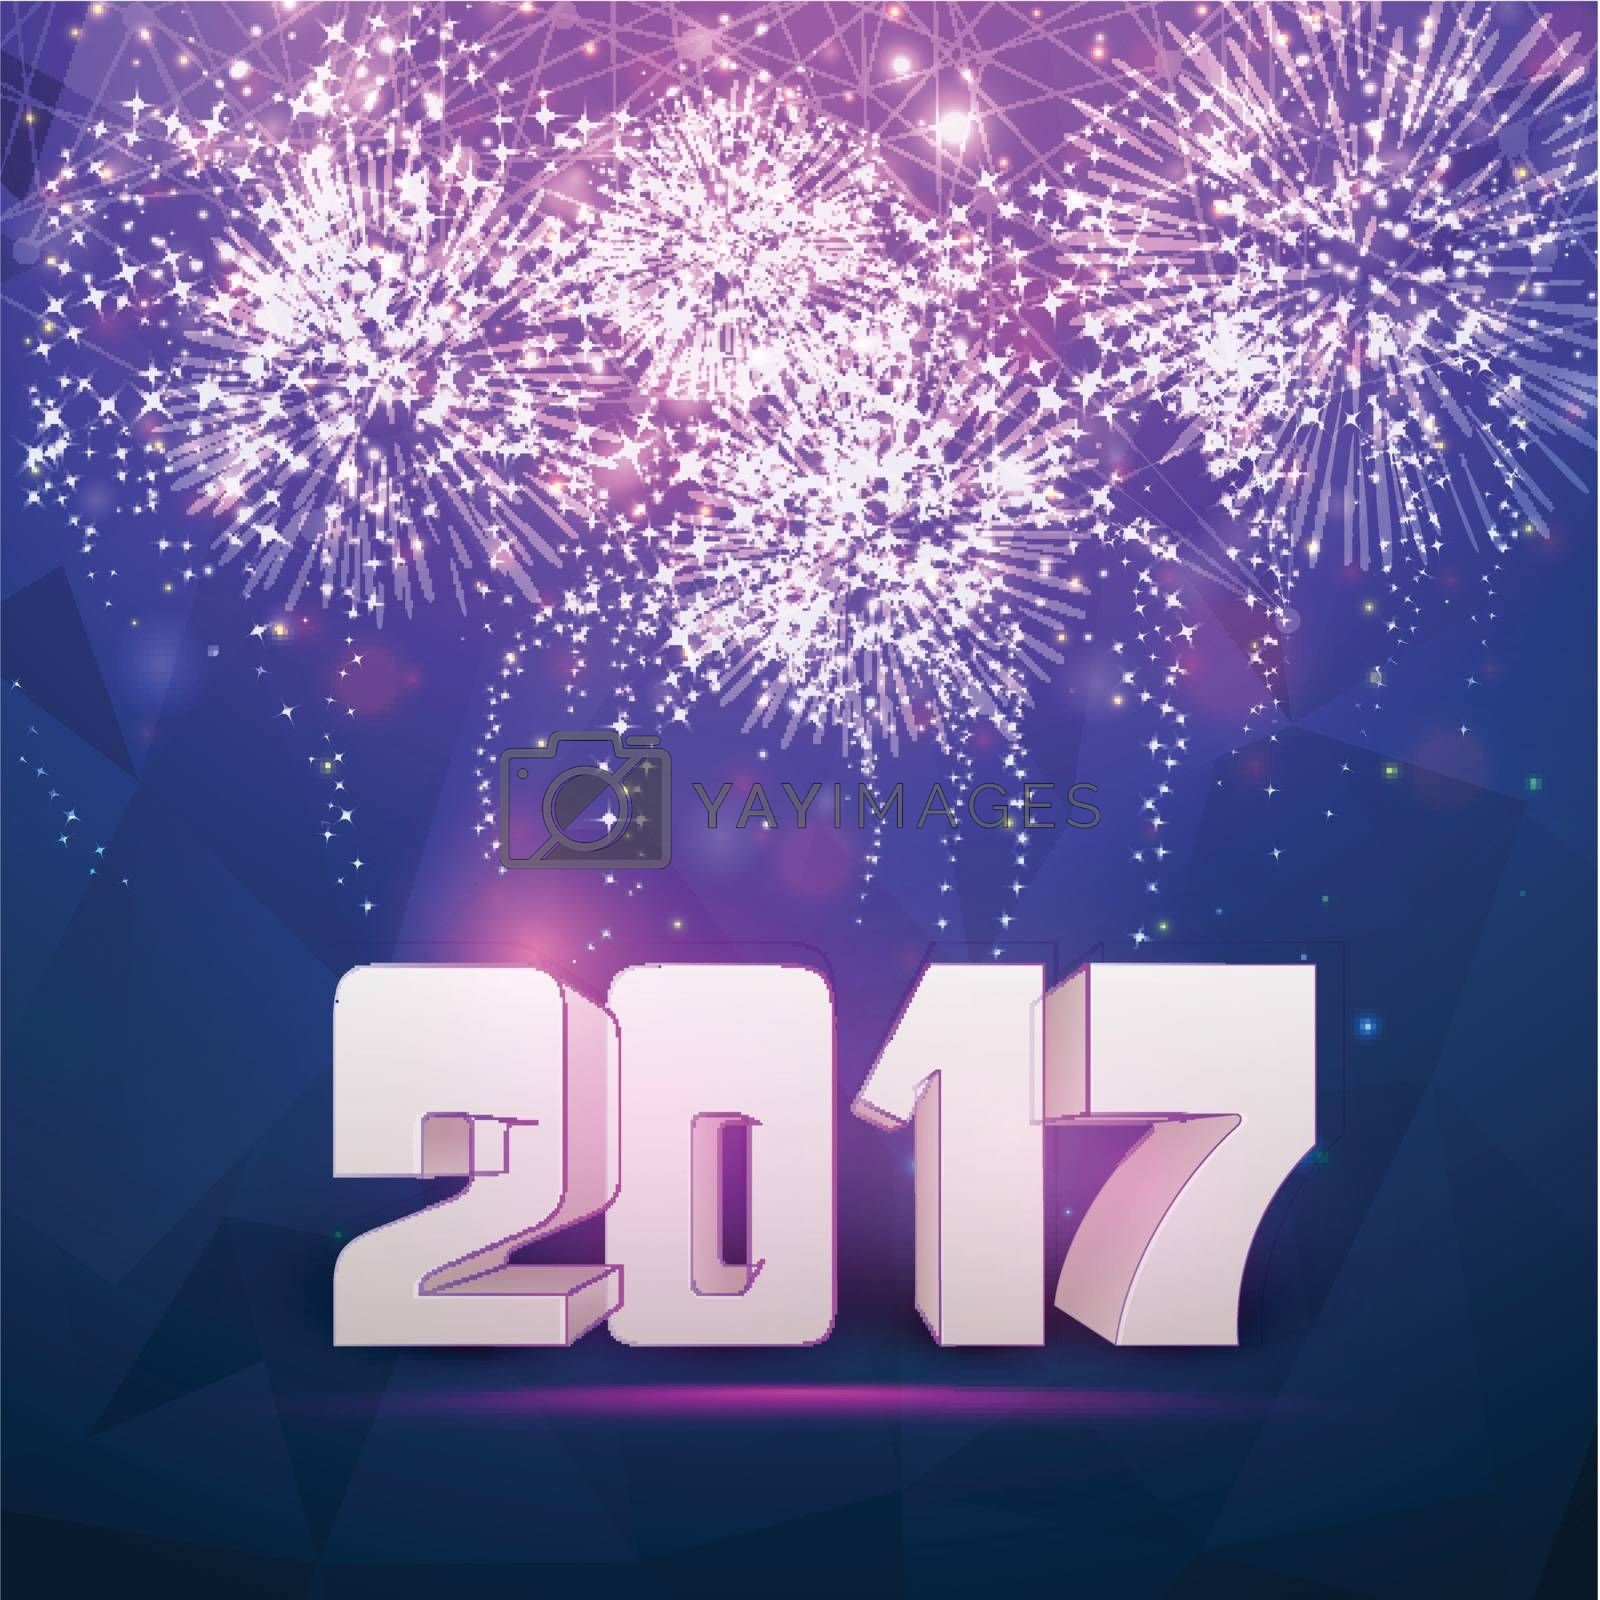 Beautiful festive background with firework explosion. Creative 3D text 2017 for Happy New Year celebration.